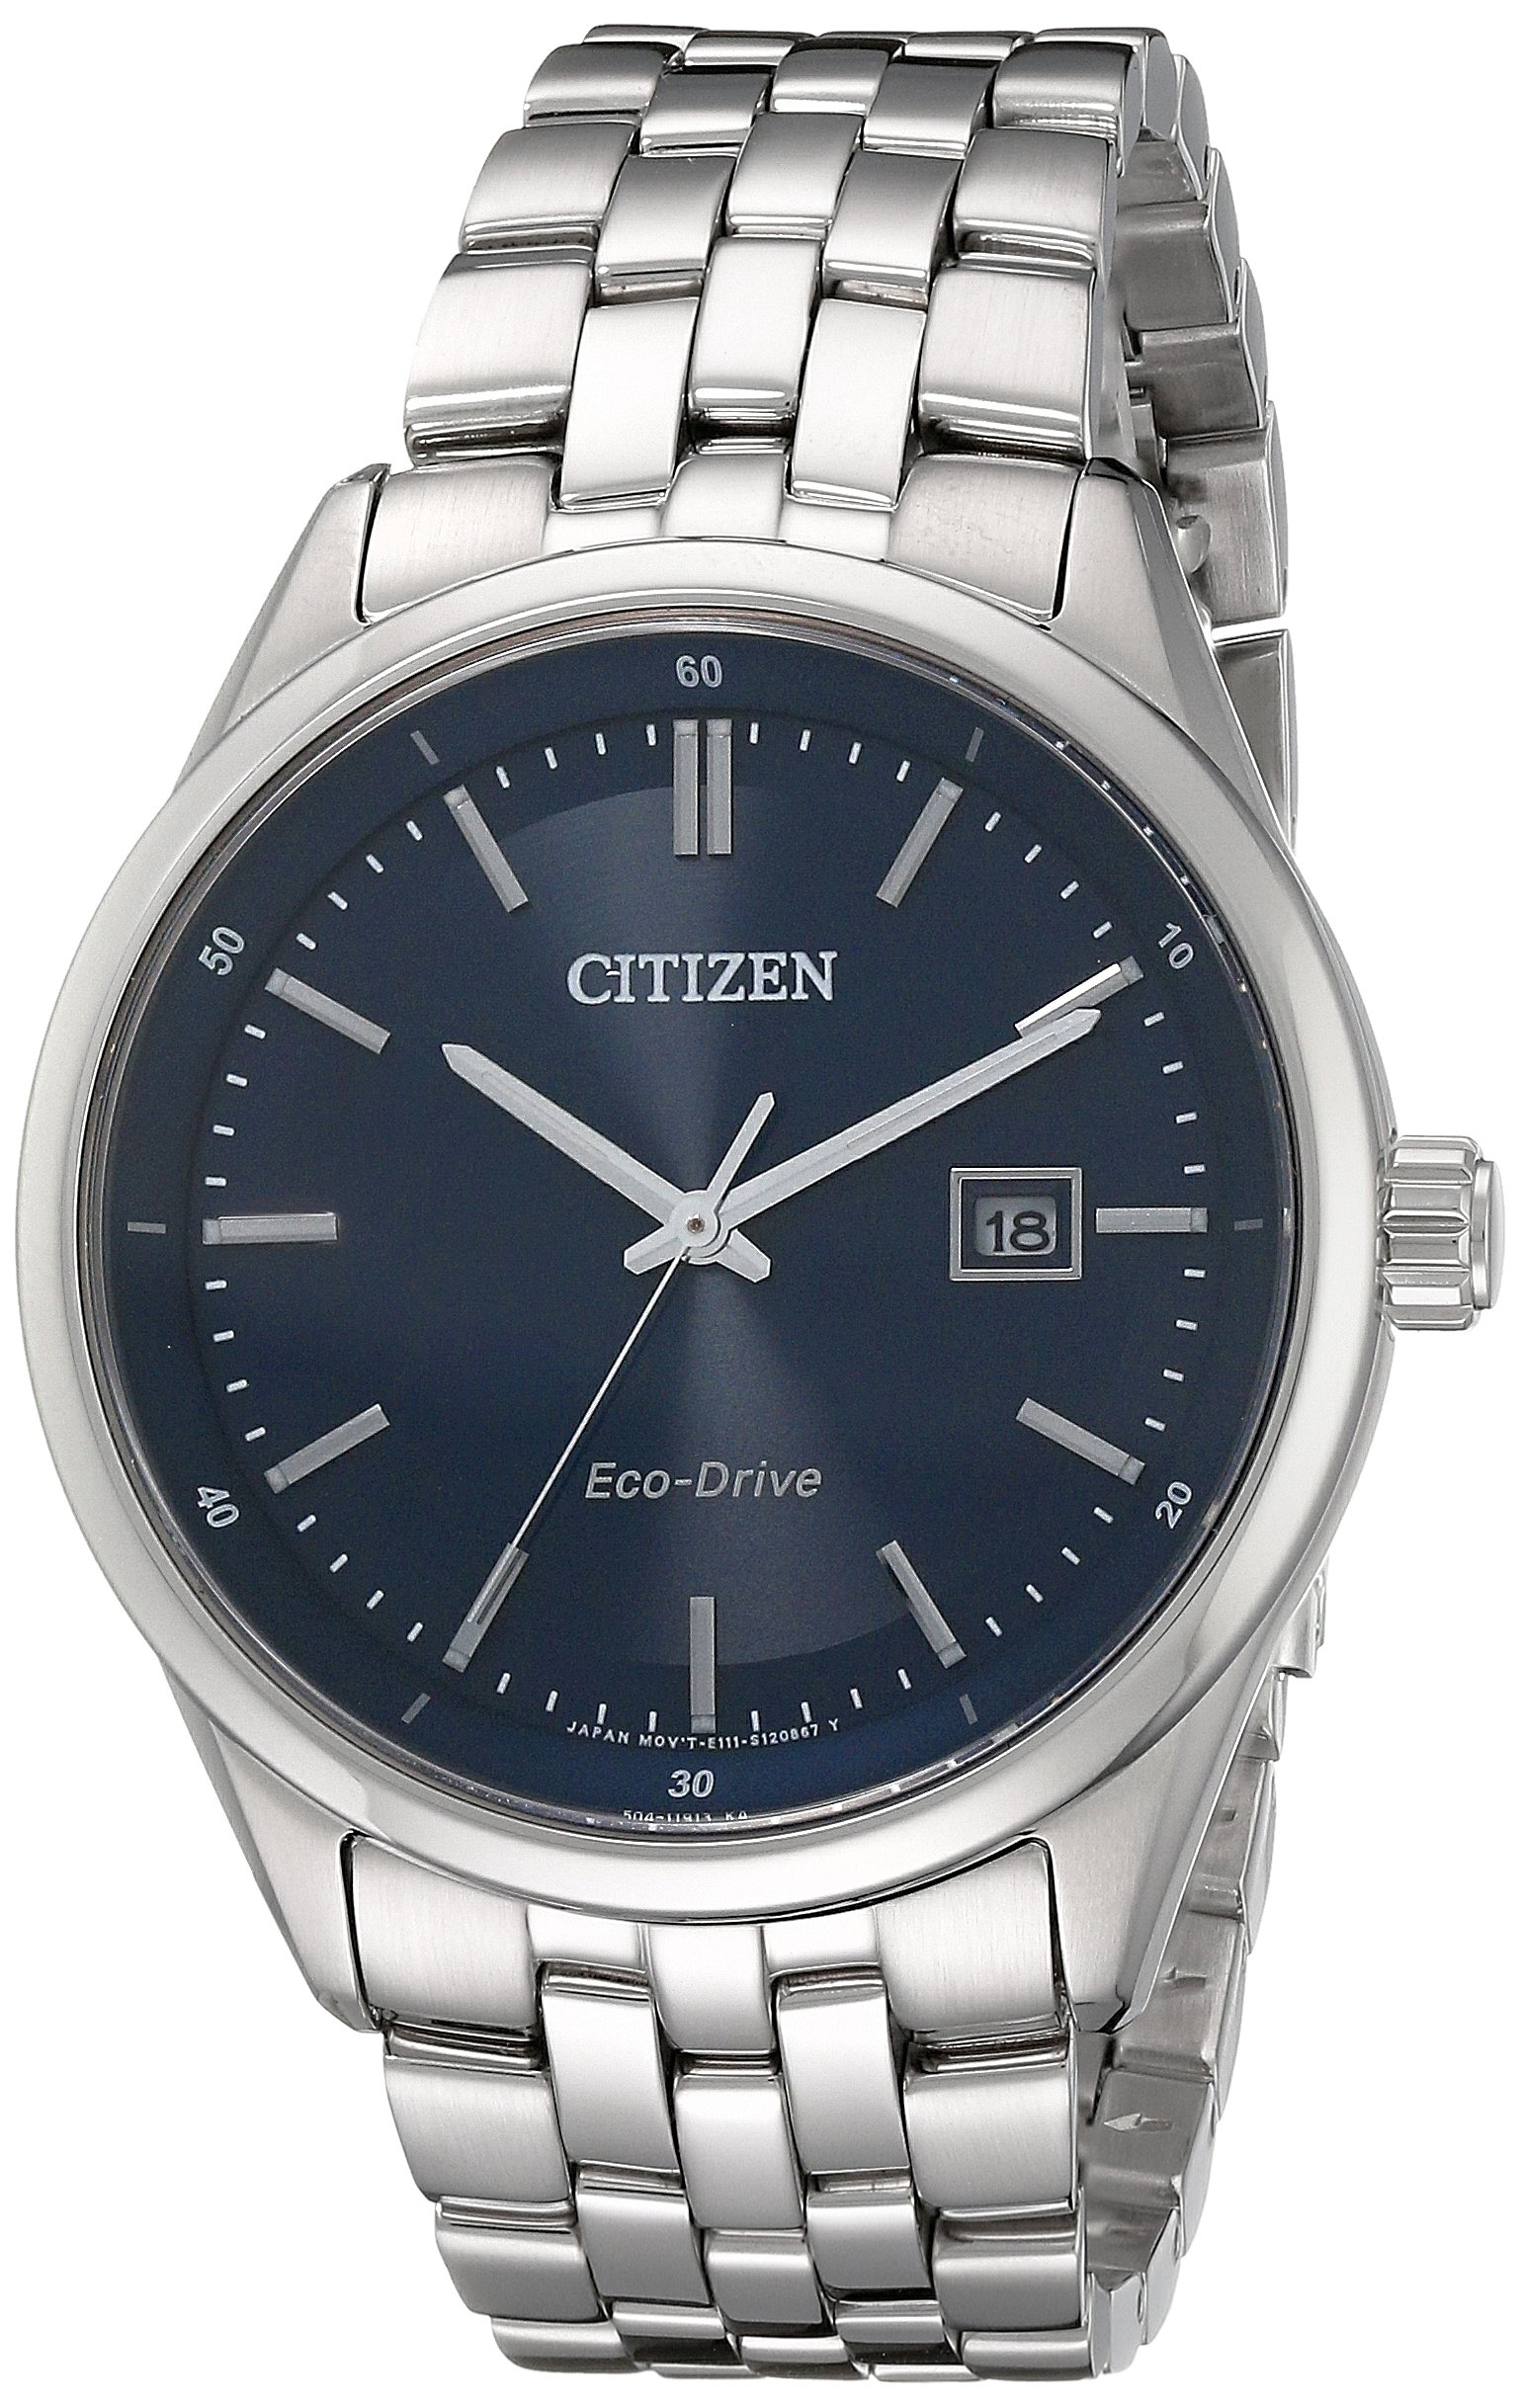 Men's Eco-Drive Stainless Steel Watch with Date, BM7251-53L